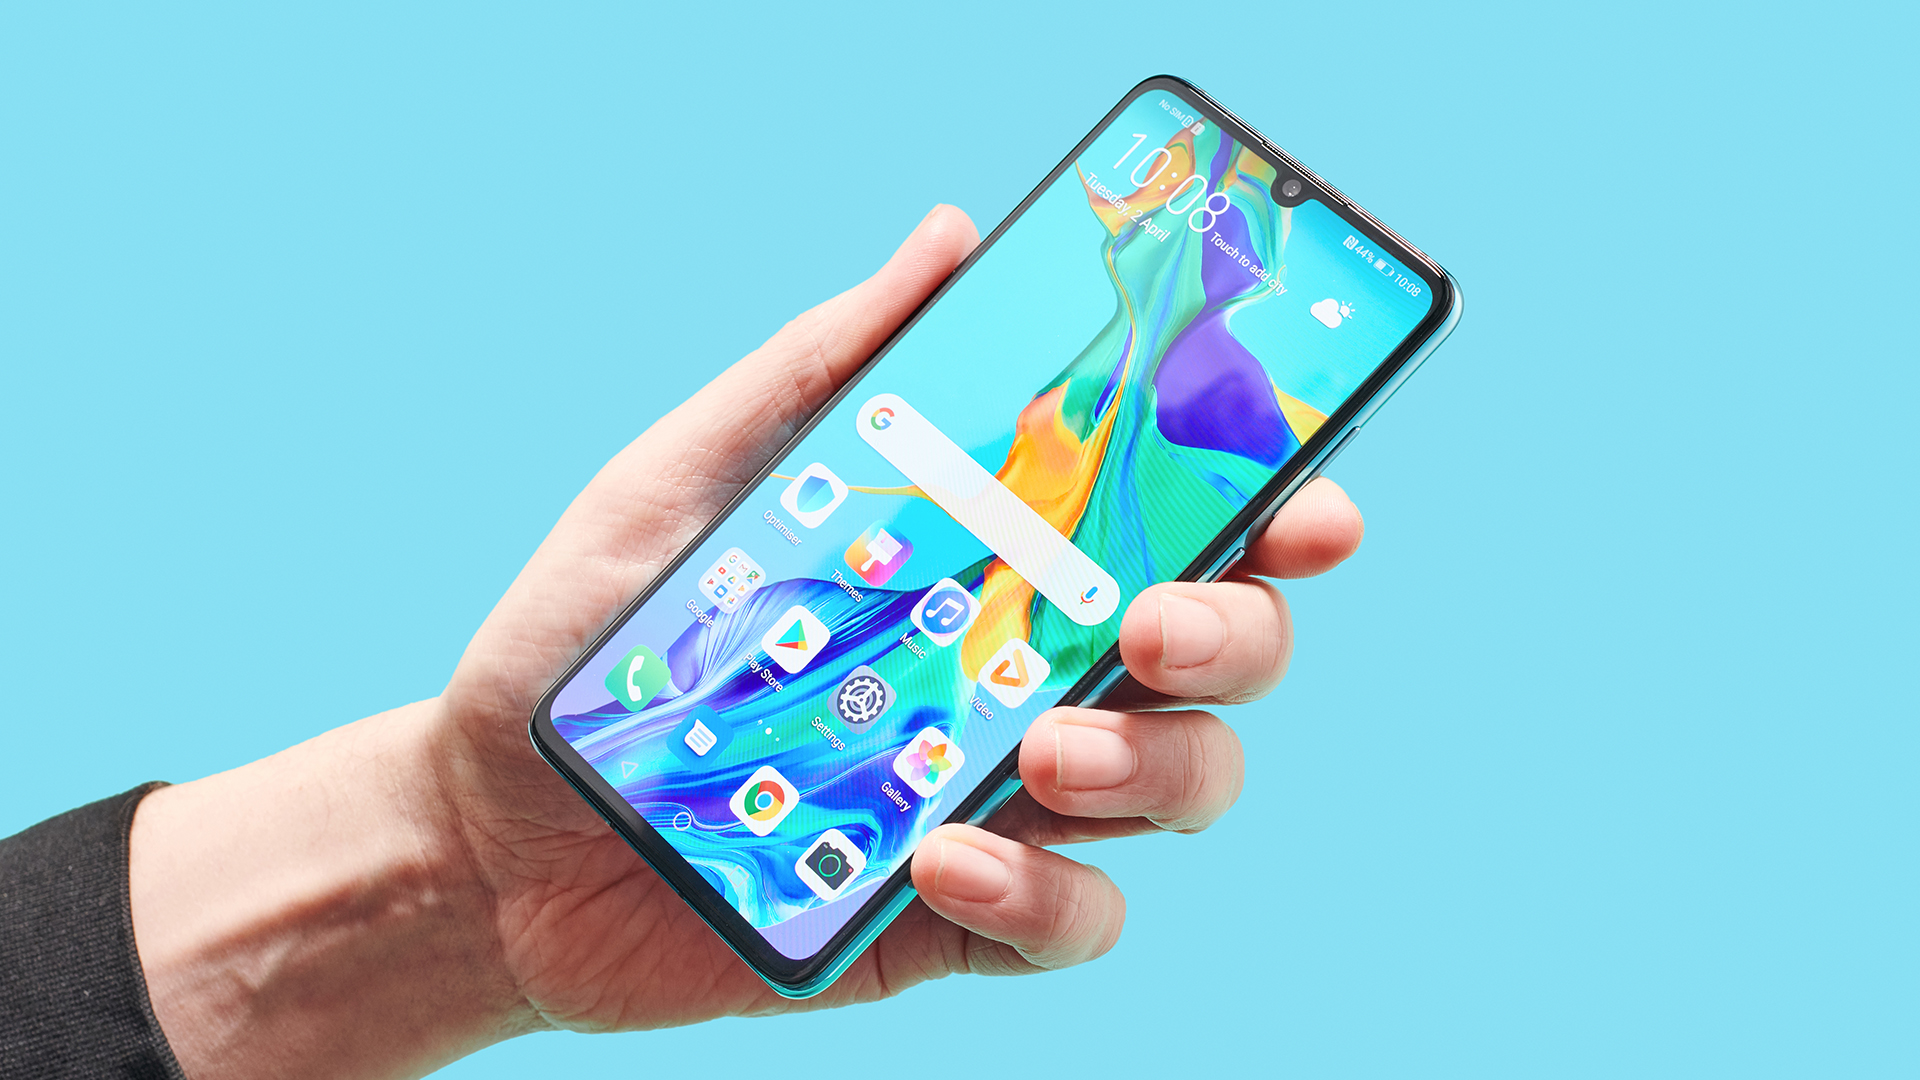 Huawei P30 Pro Android Q update 'confirmed' by Huawei - but is it